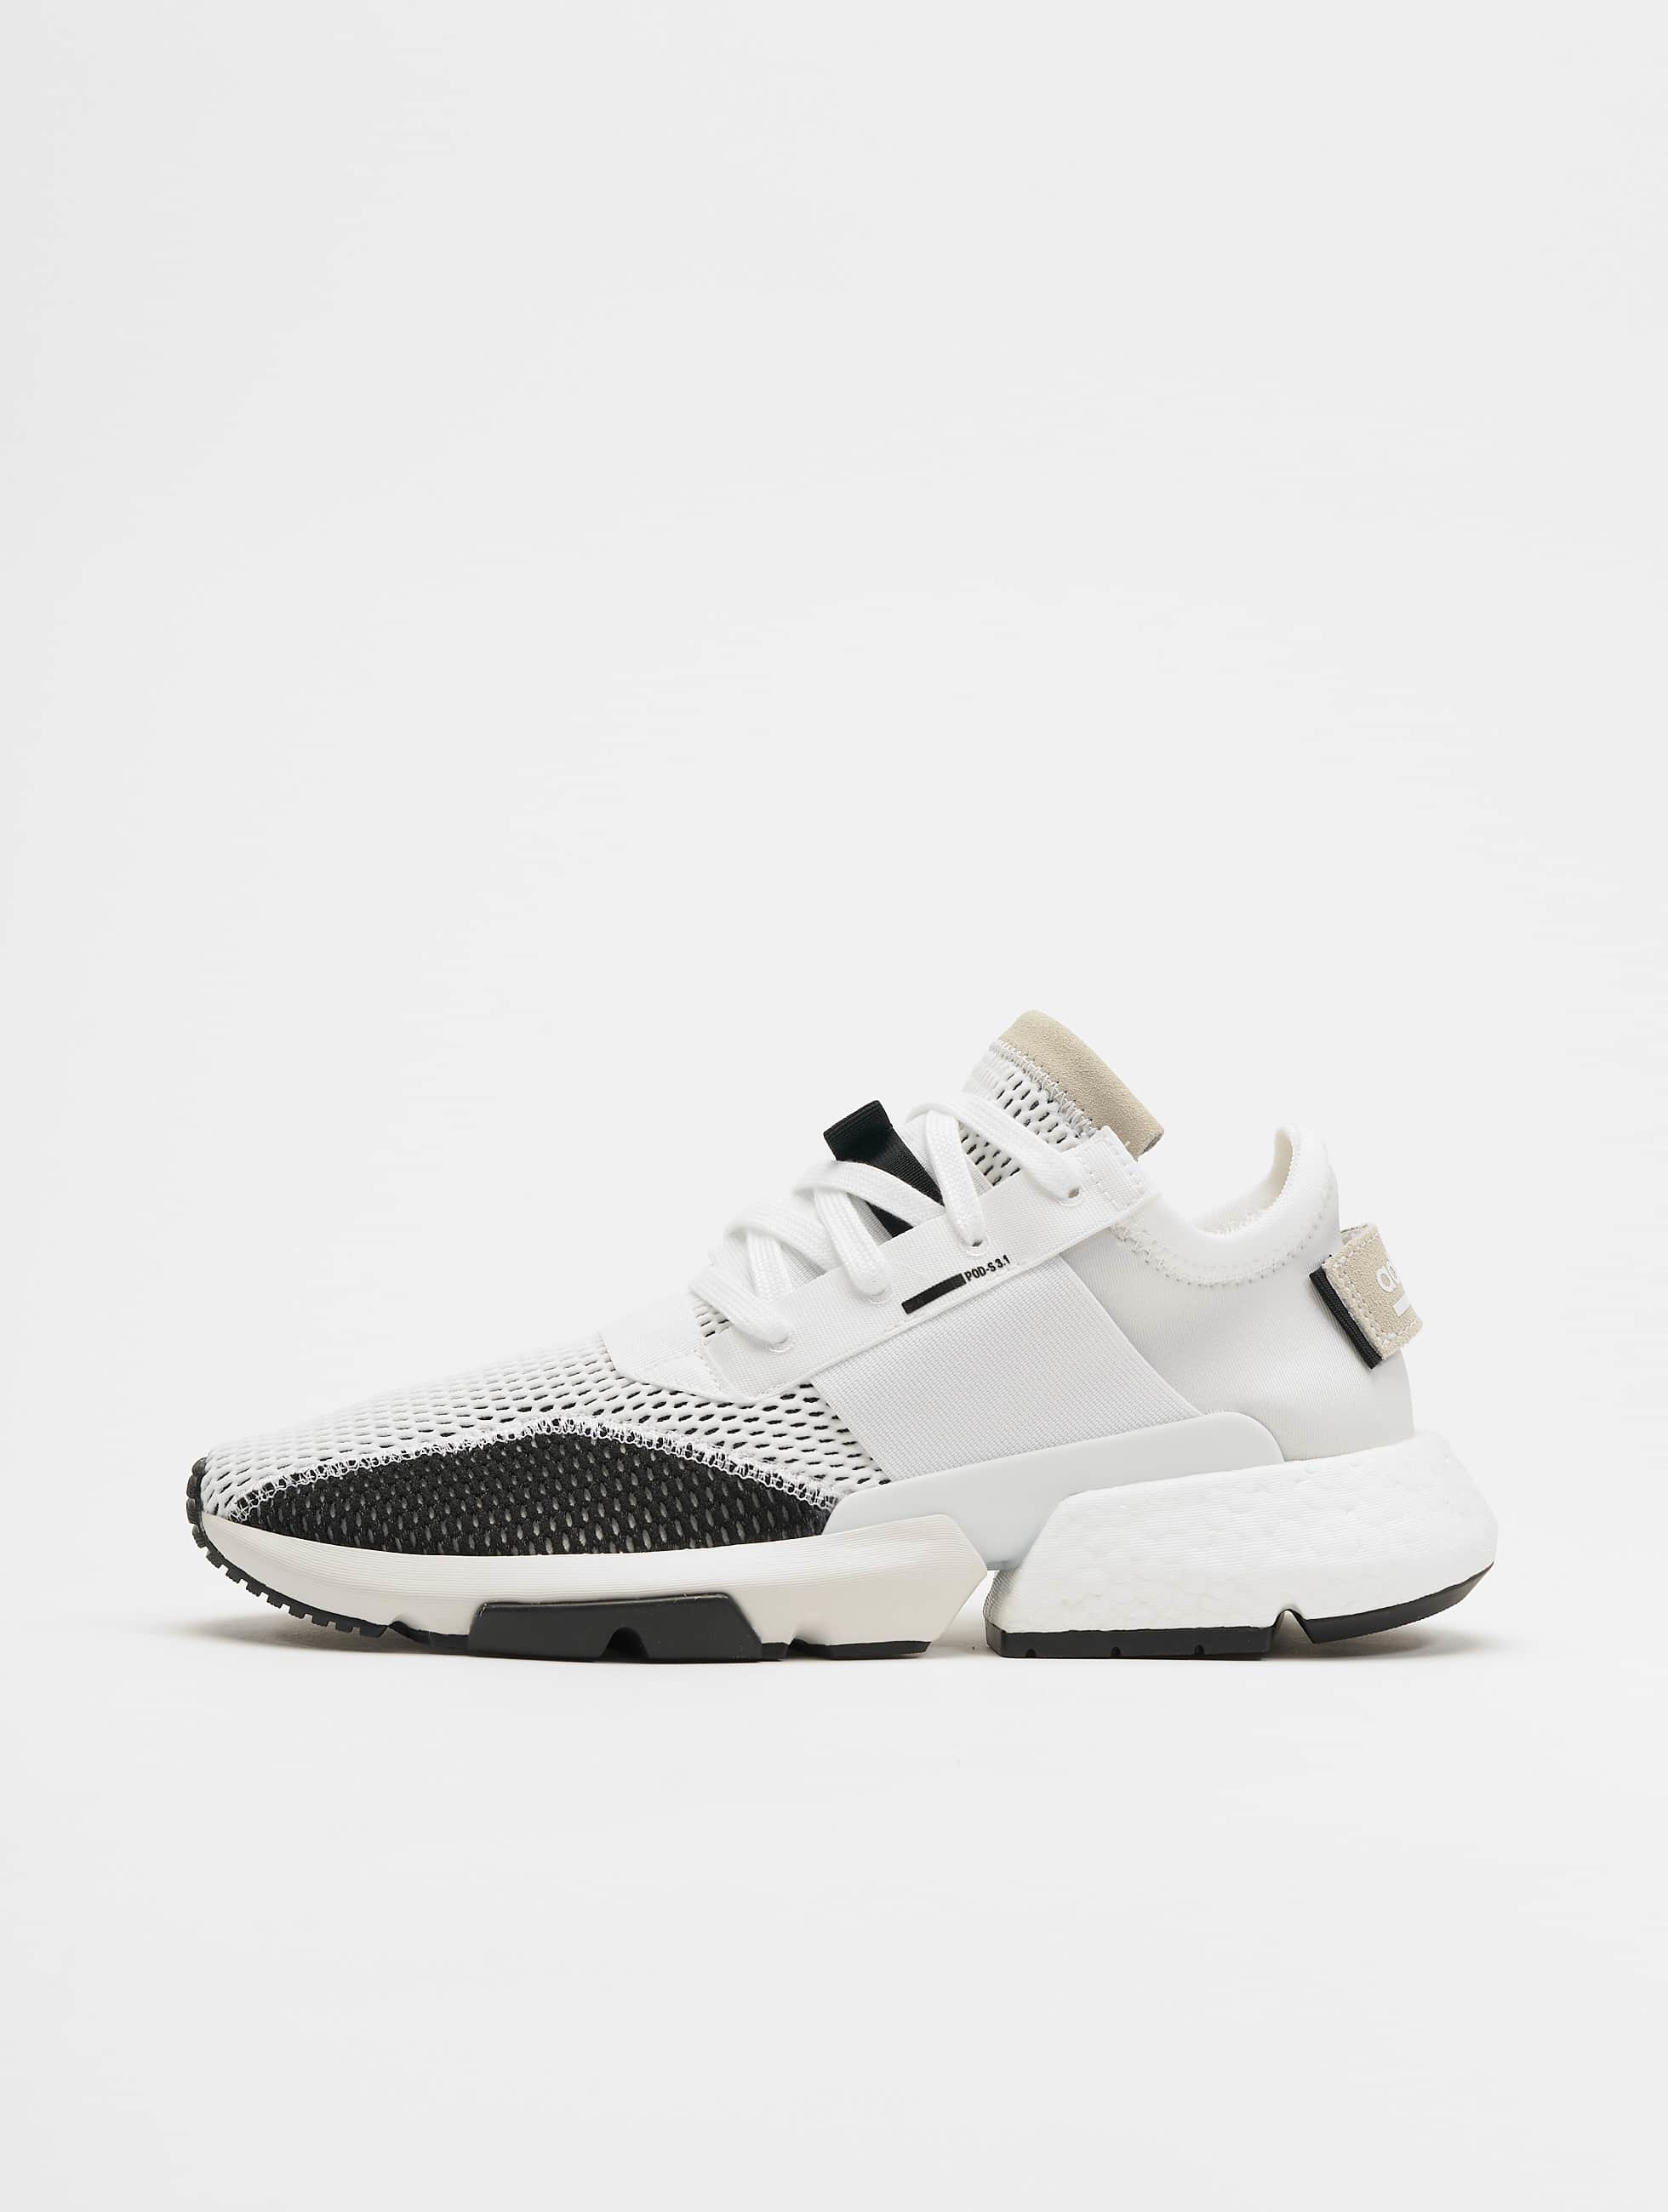 adidas Originals Pod S3.1 Sneakers Footwear WhiteFootwear WhiteCore Black